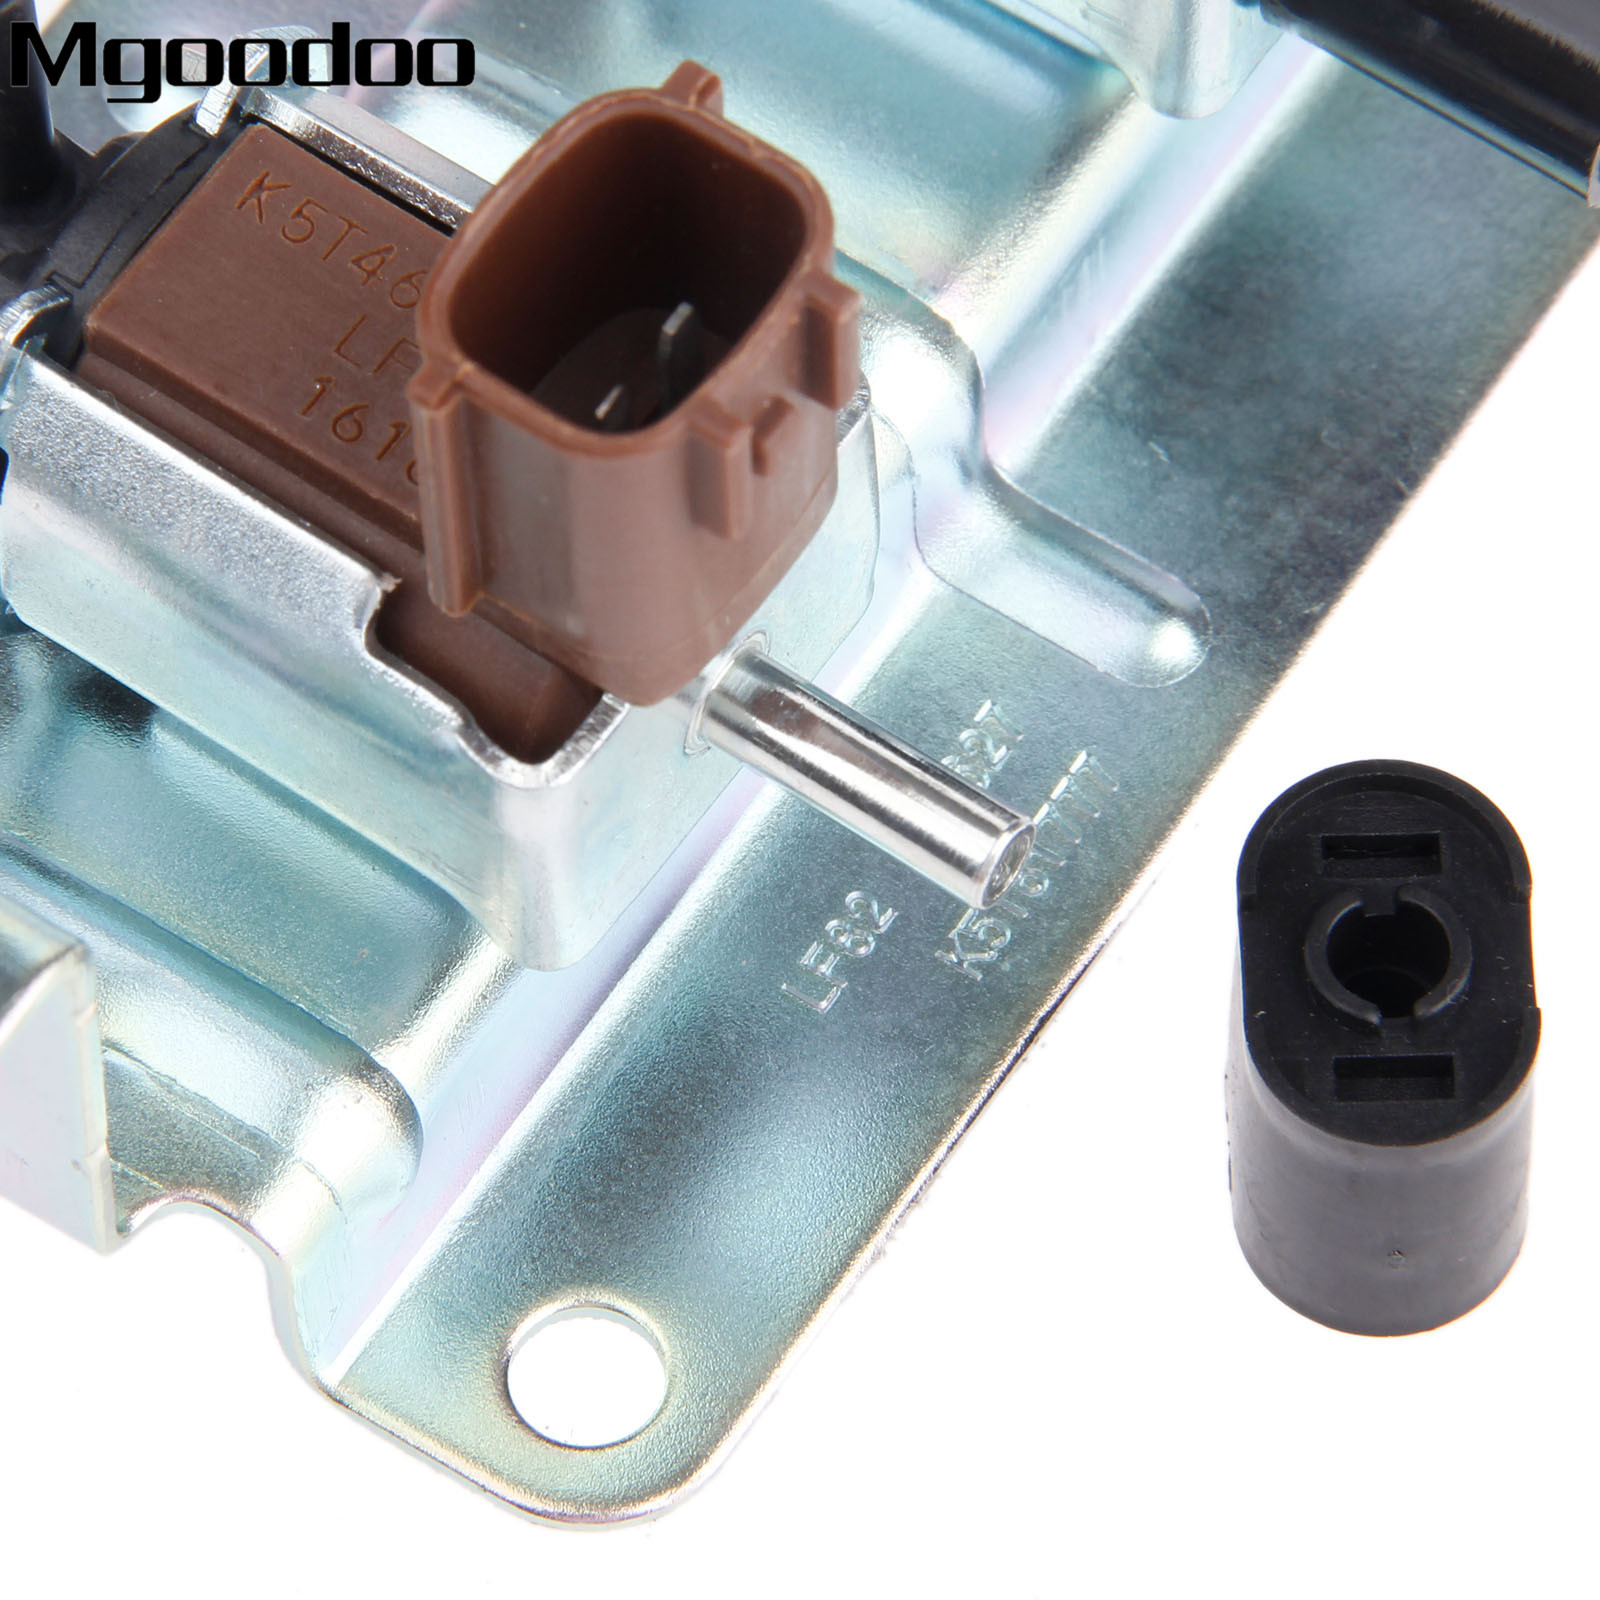 1Pc Purge Control Solenoid Valve K5T46597 K5T81777 4M5G 9A500 K5T81297 For Mazda 3 5 6 CX 7 FORD High Quanlity in Drive Elements from Automobiles Motorcycles